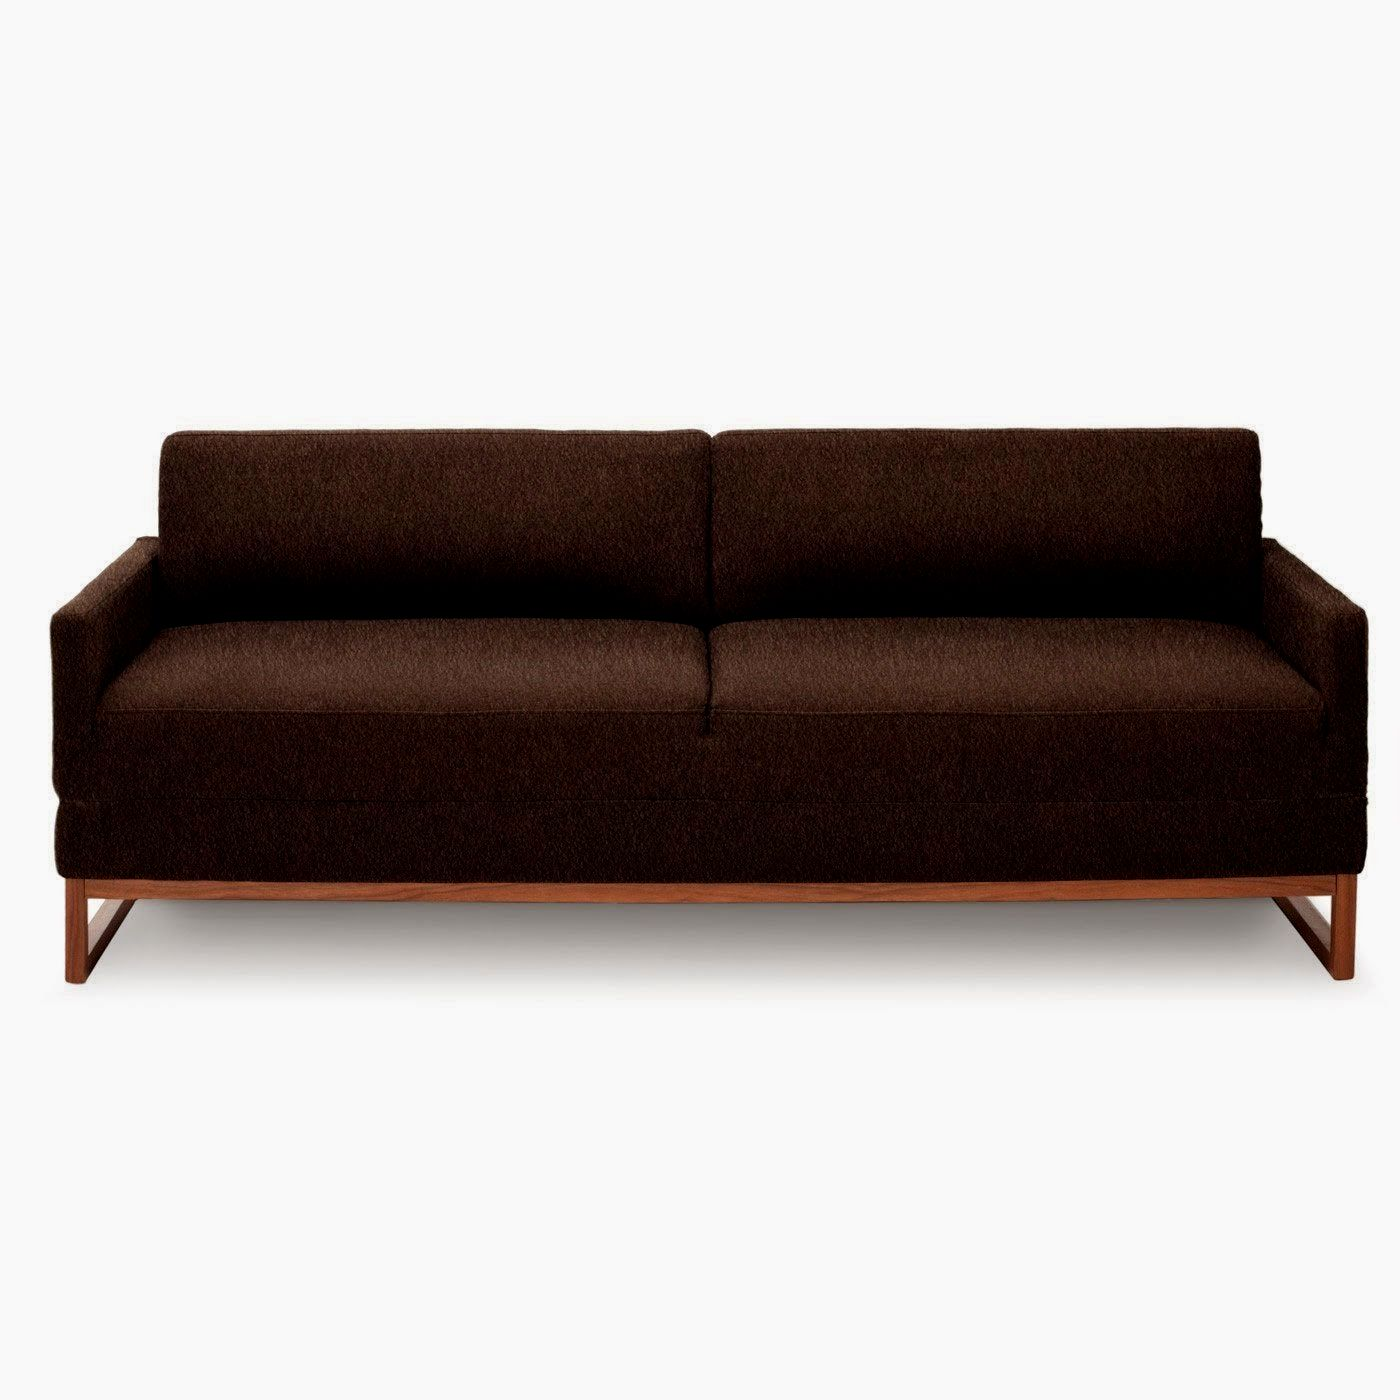 modern u shaped sofa picture-Modern U Shaped sofa Photo